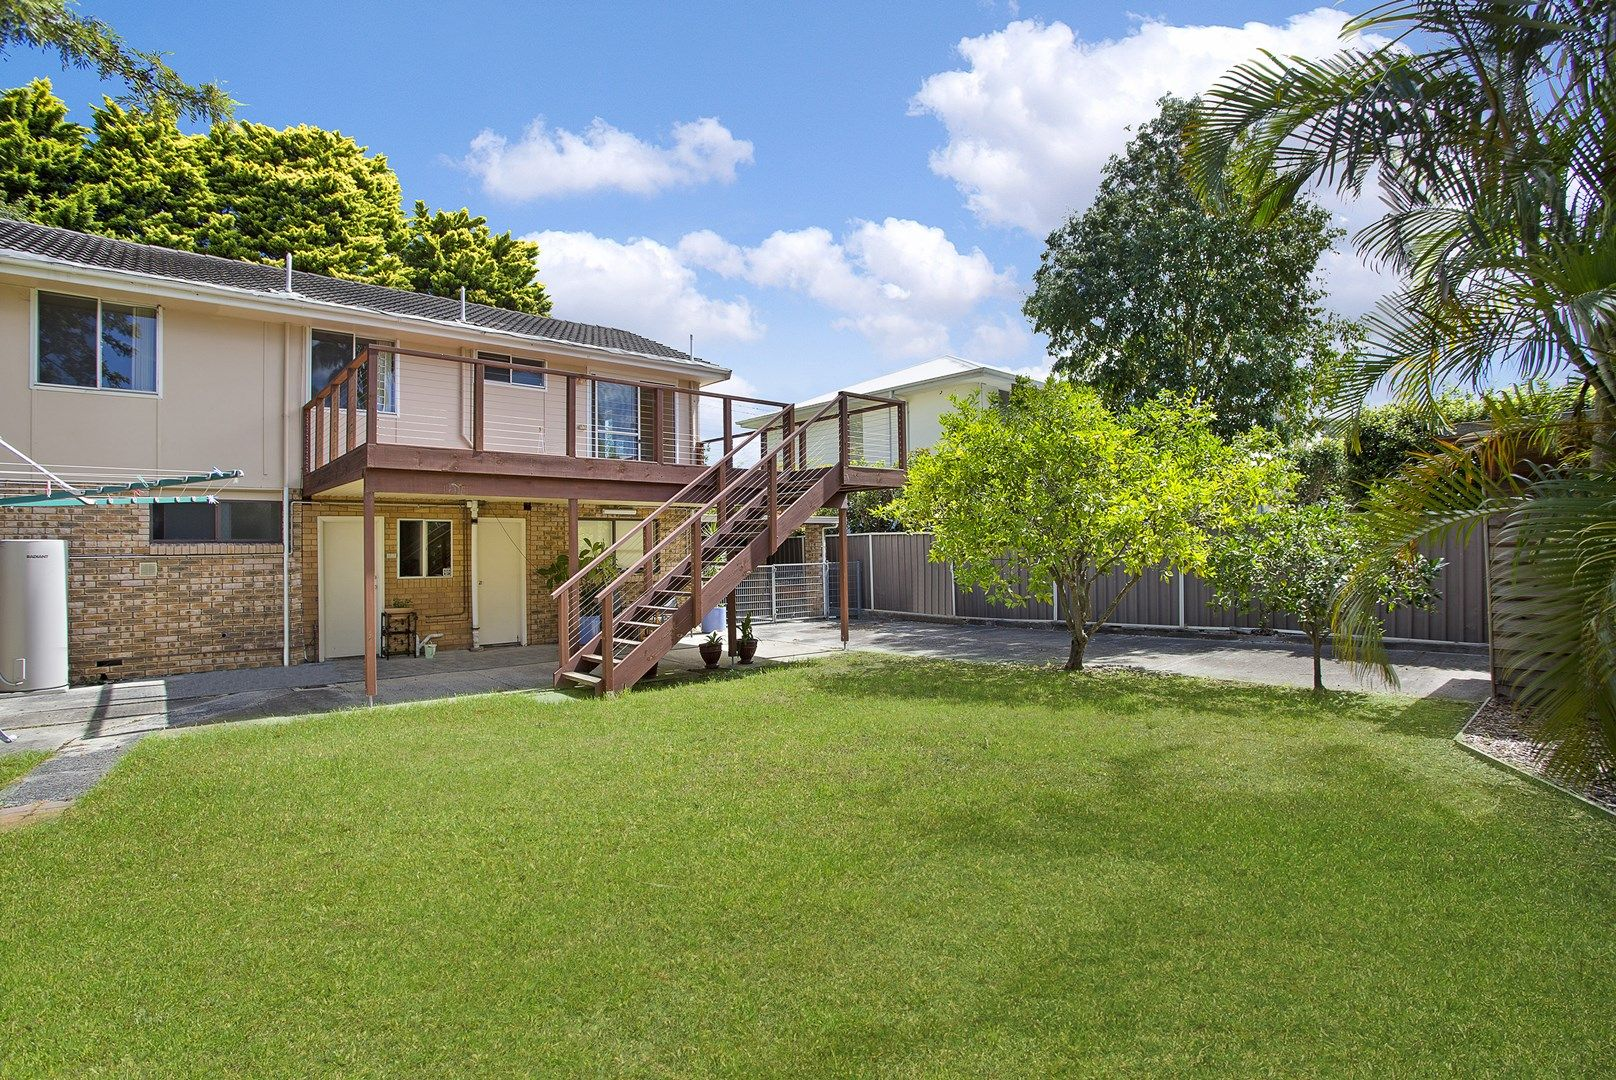 59A Terrigal Drive, Terrigal NSW 2260, Image 4